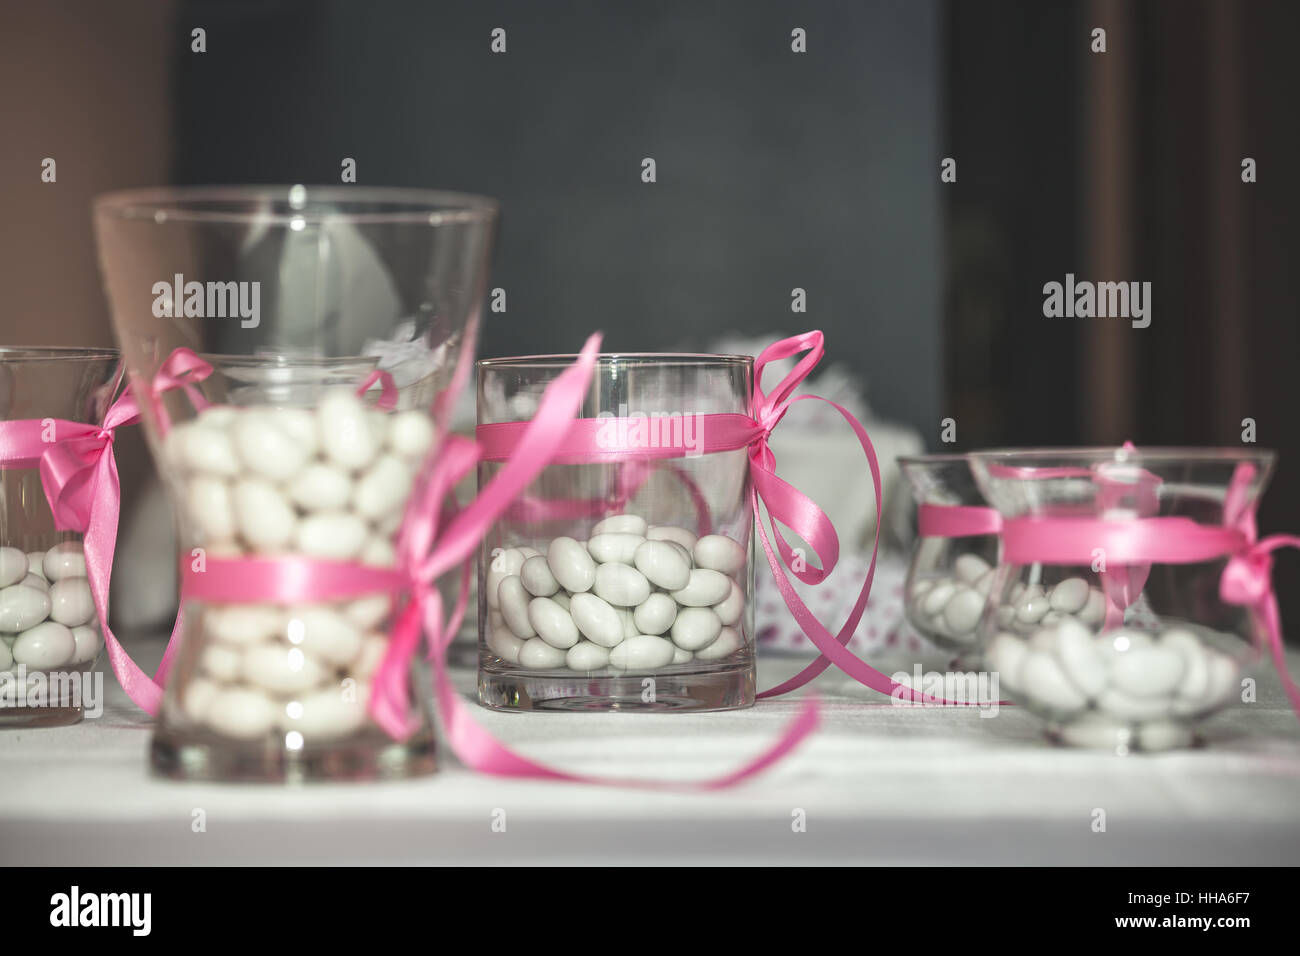 Wedding Candy Decorations On A Table Stock Photo 131146379 Alamy